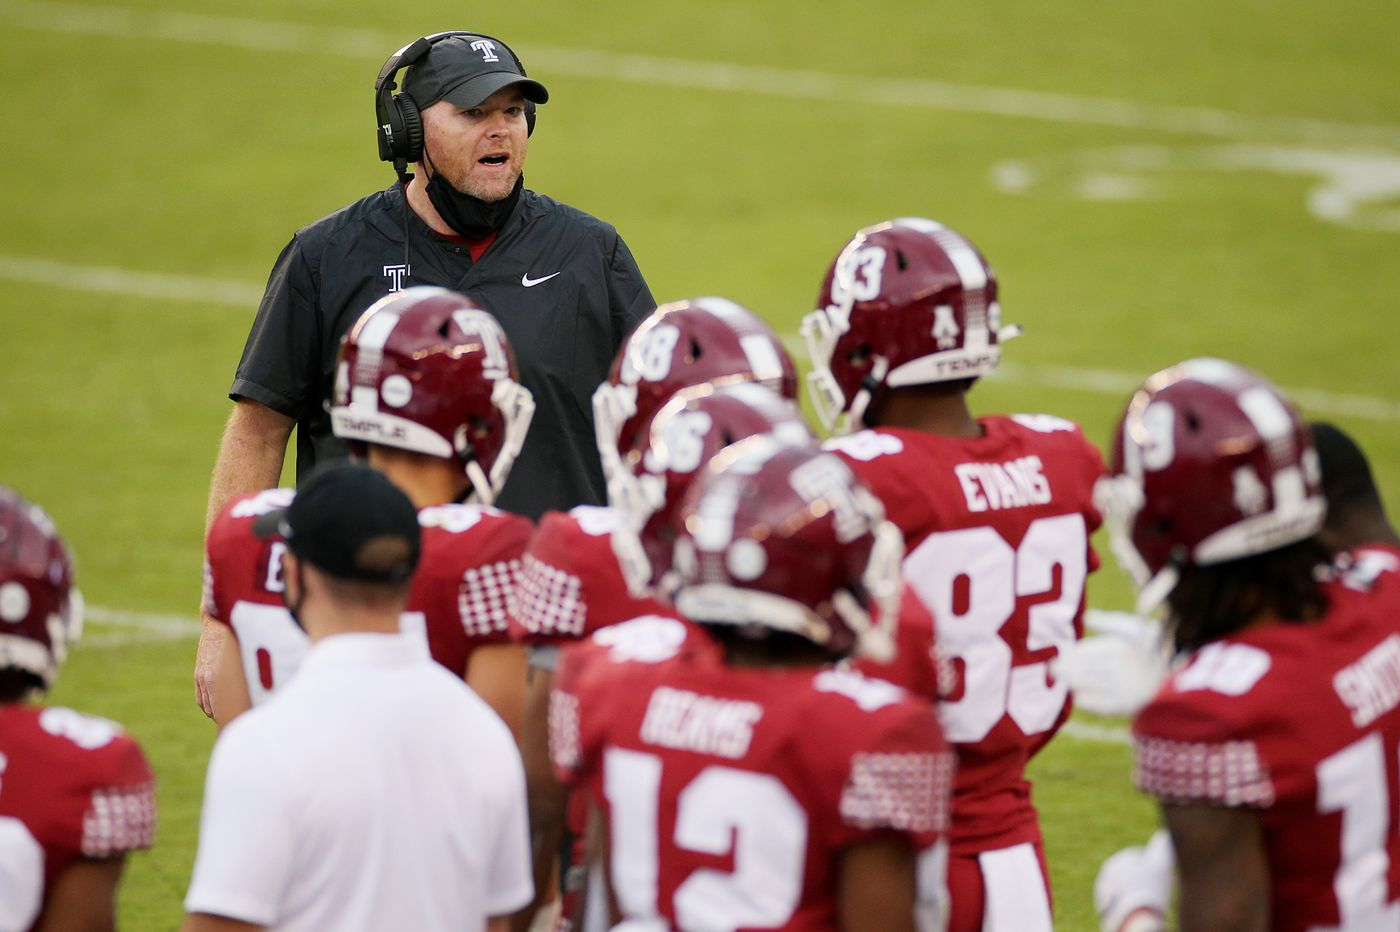 'We have dealt with COVID and quite frankly COVID won,' says Temple football coach Rod Carey